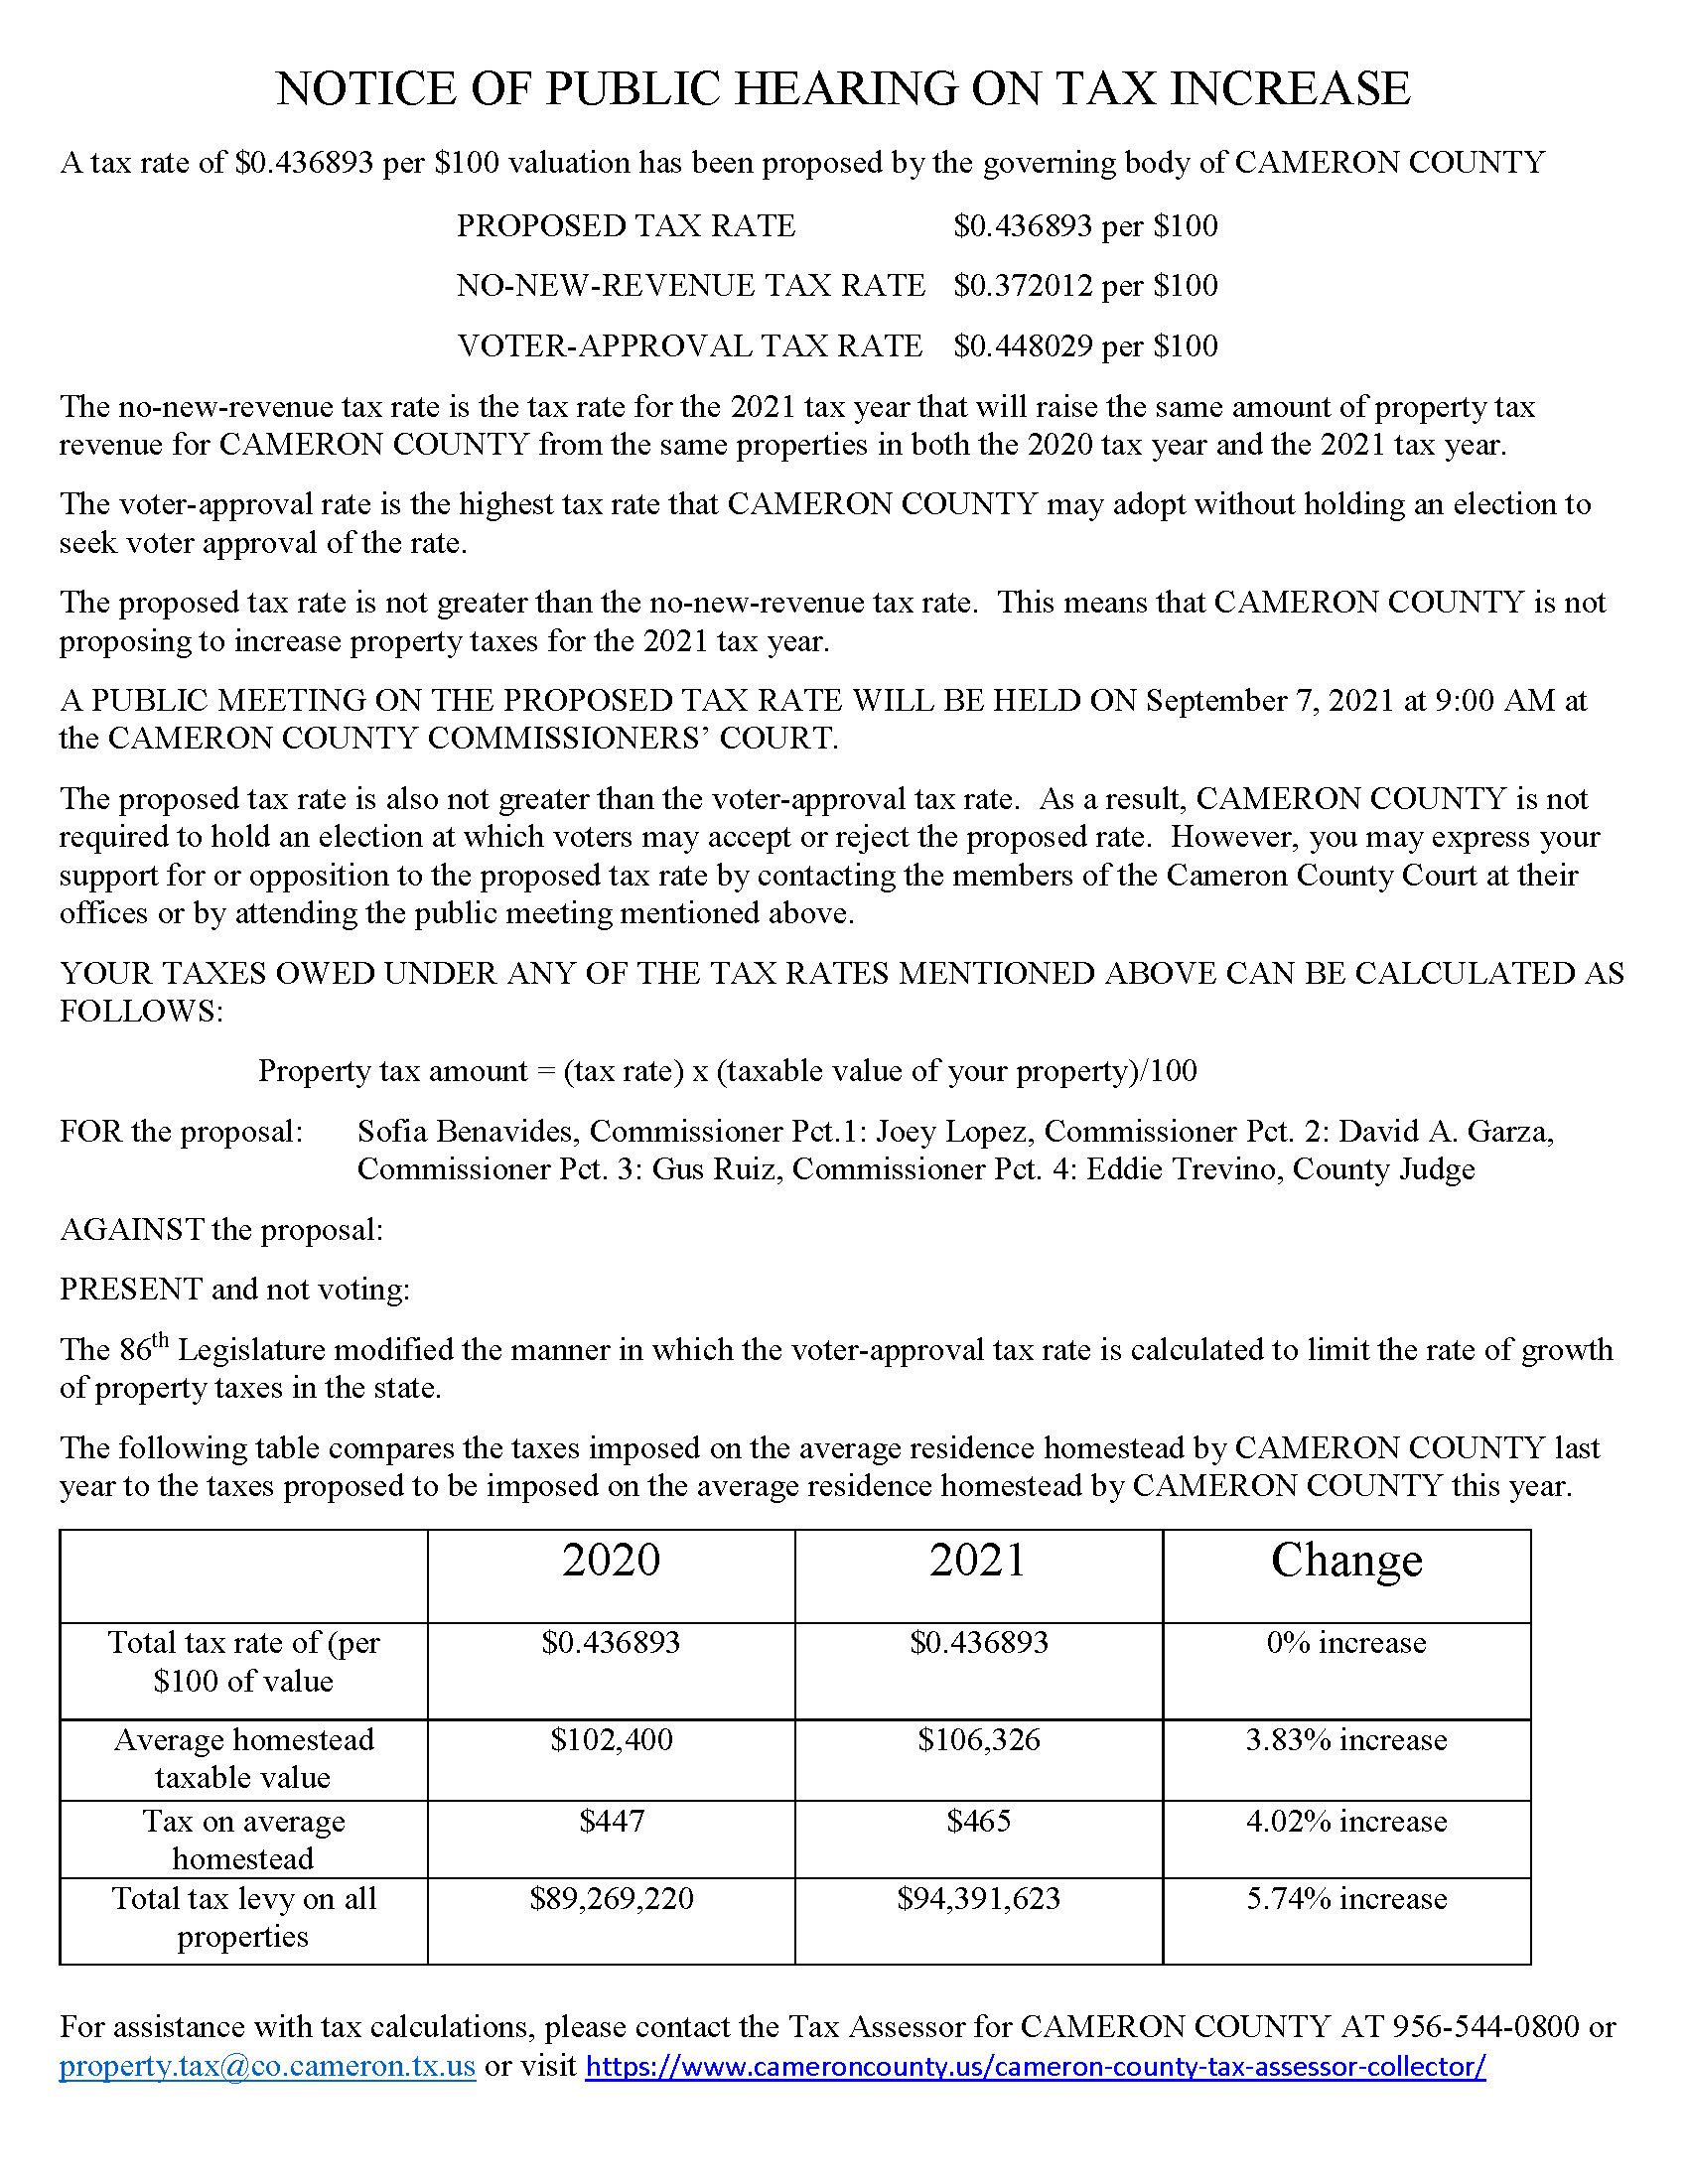 NOTICE OF MEETING TO VOTE ON TAX RATE